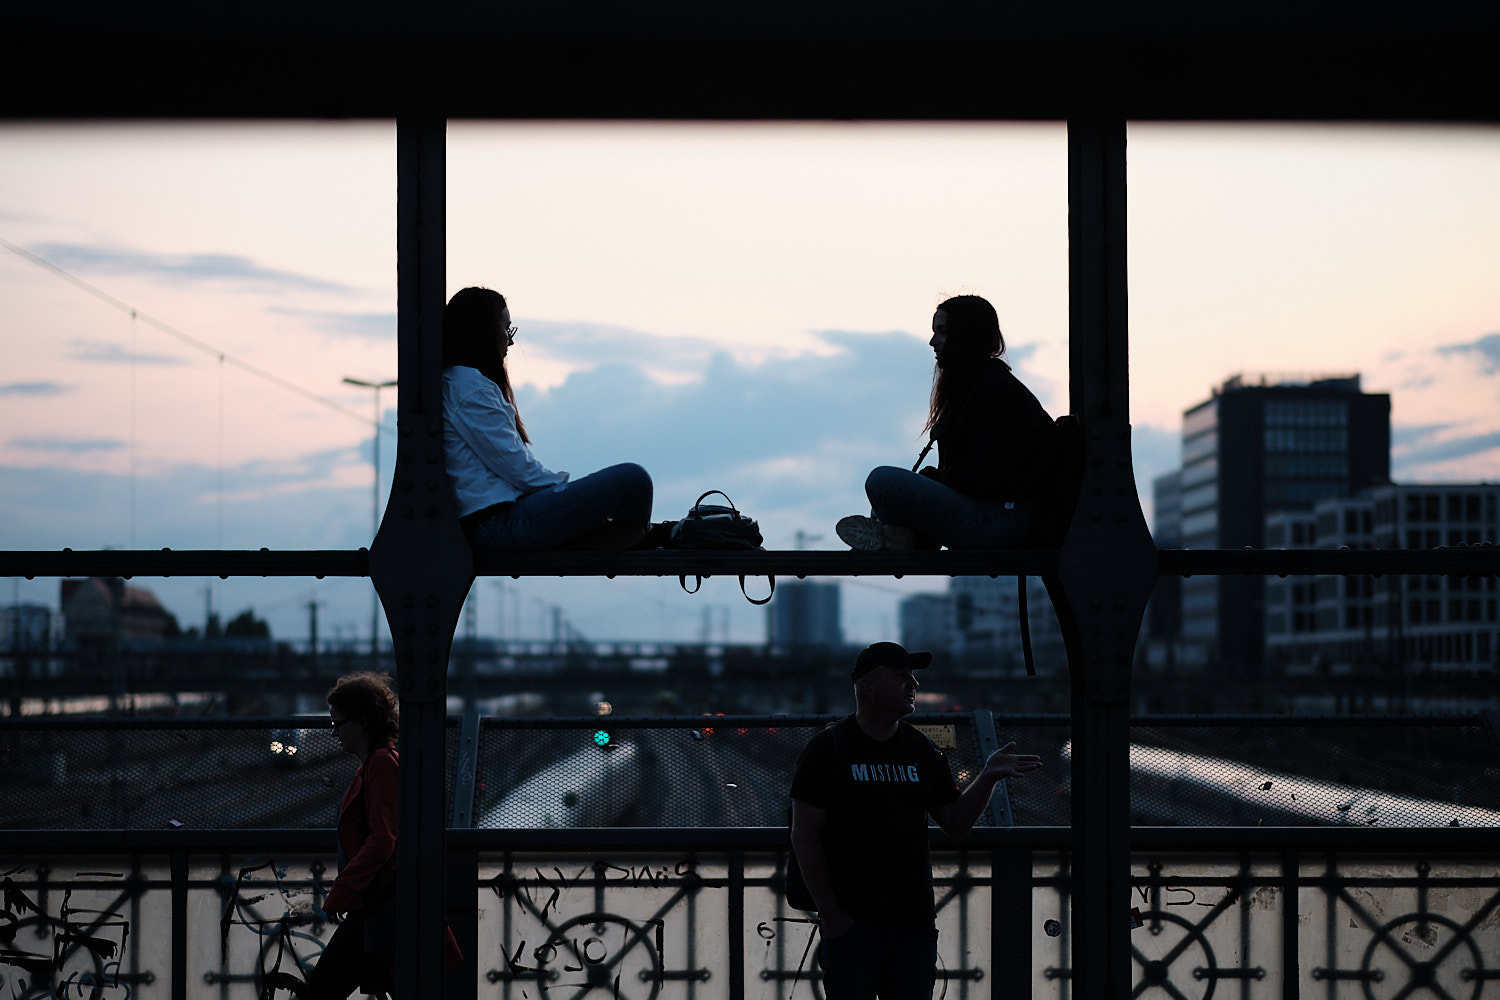 Two ladies chat perched over a beam at the Hackerbrücke bridge. In the background the sunset blue sky sets them as dark profiles.